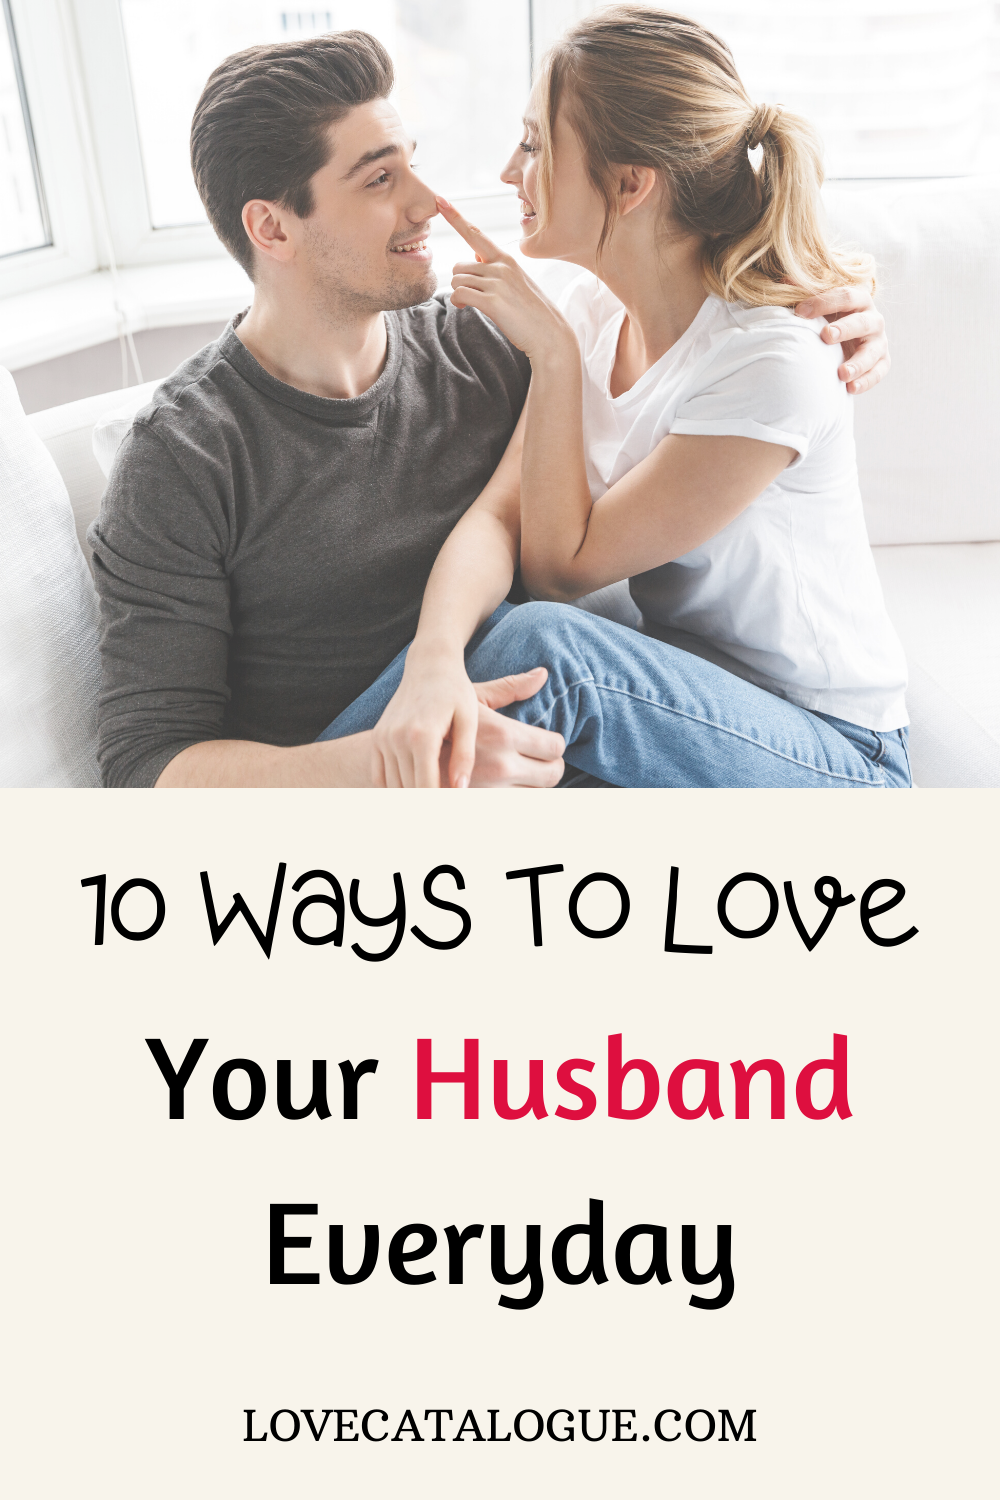 10 Easy Ways To Make Sure Your Partner Feel Special   Love